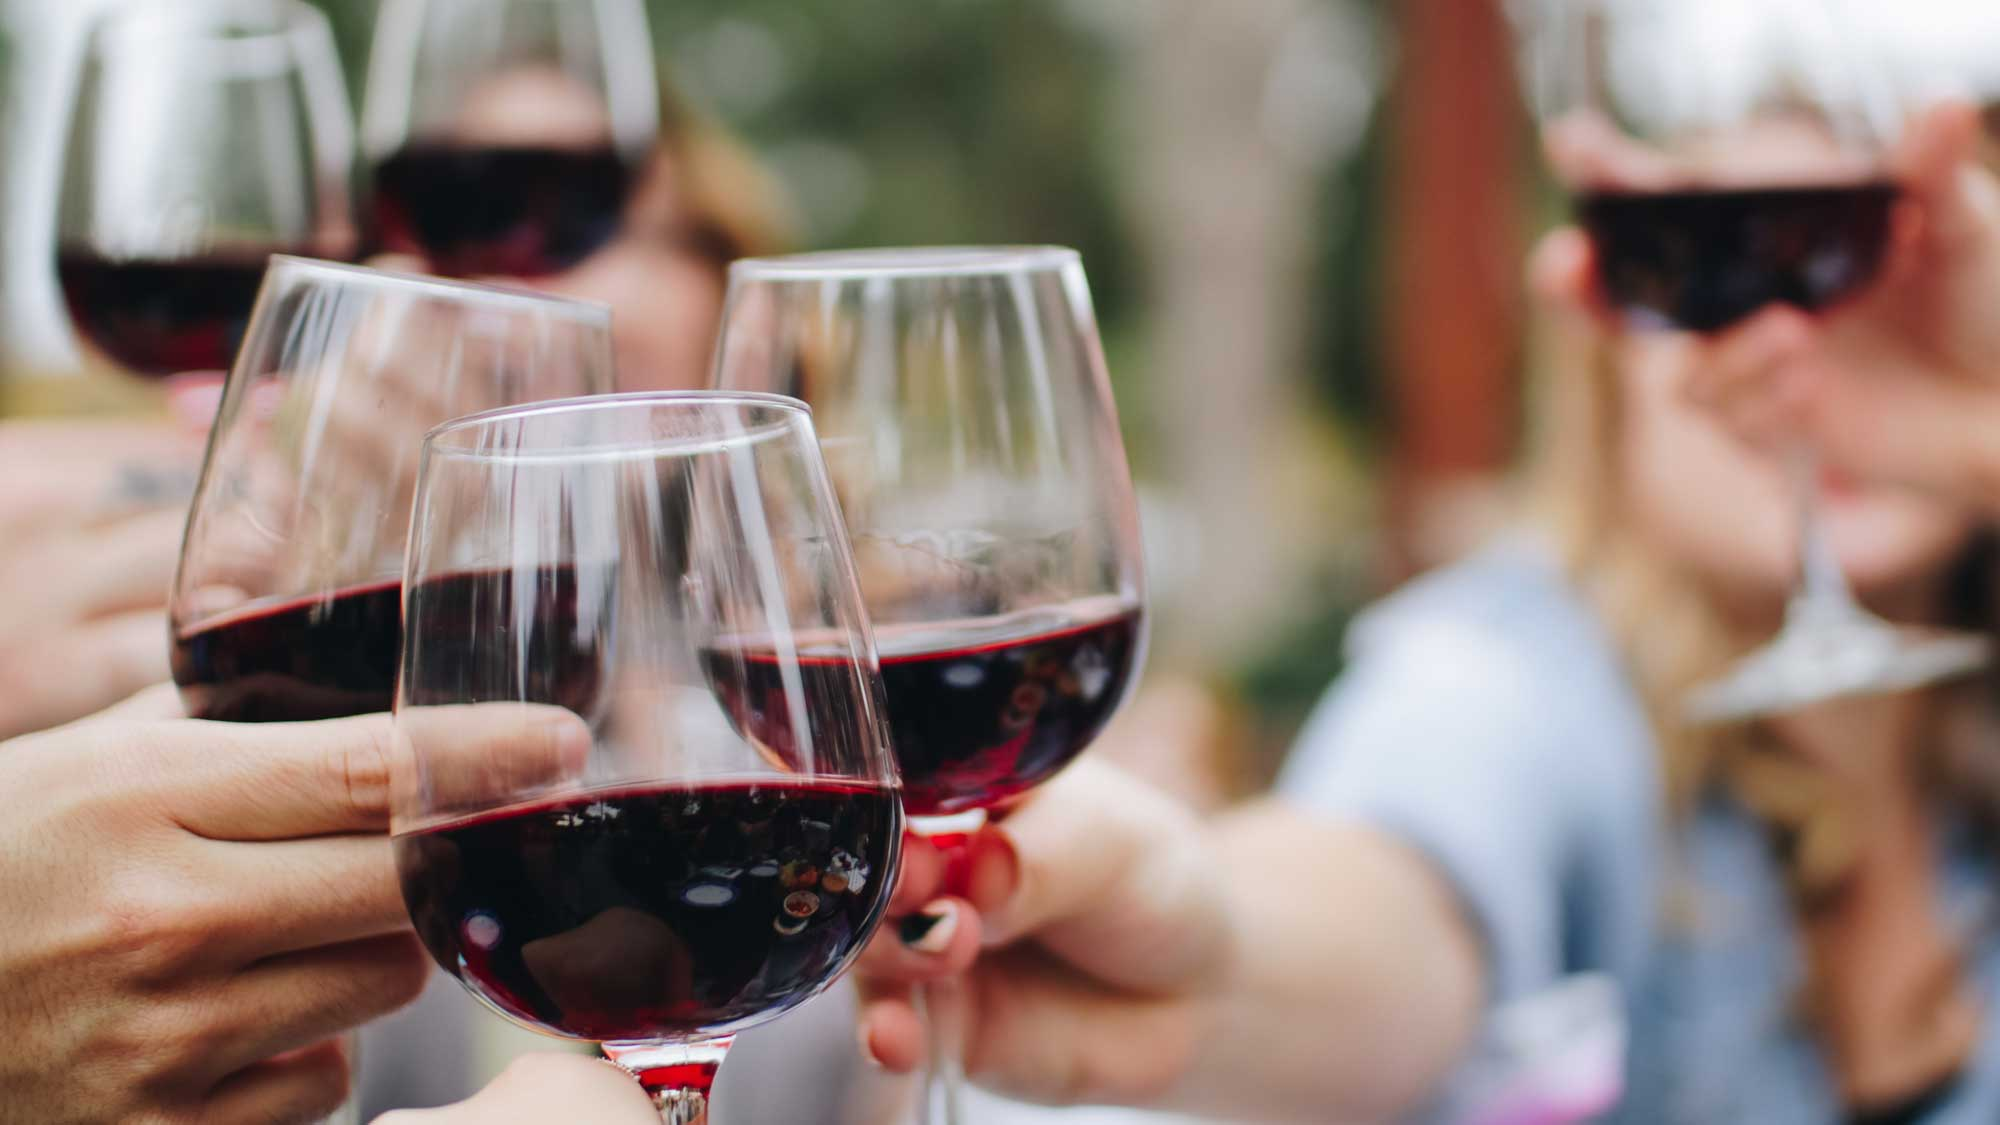 People drinking and toasting with red wine